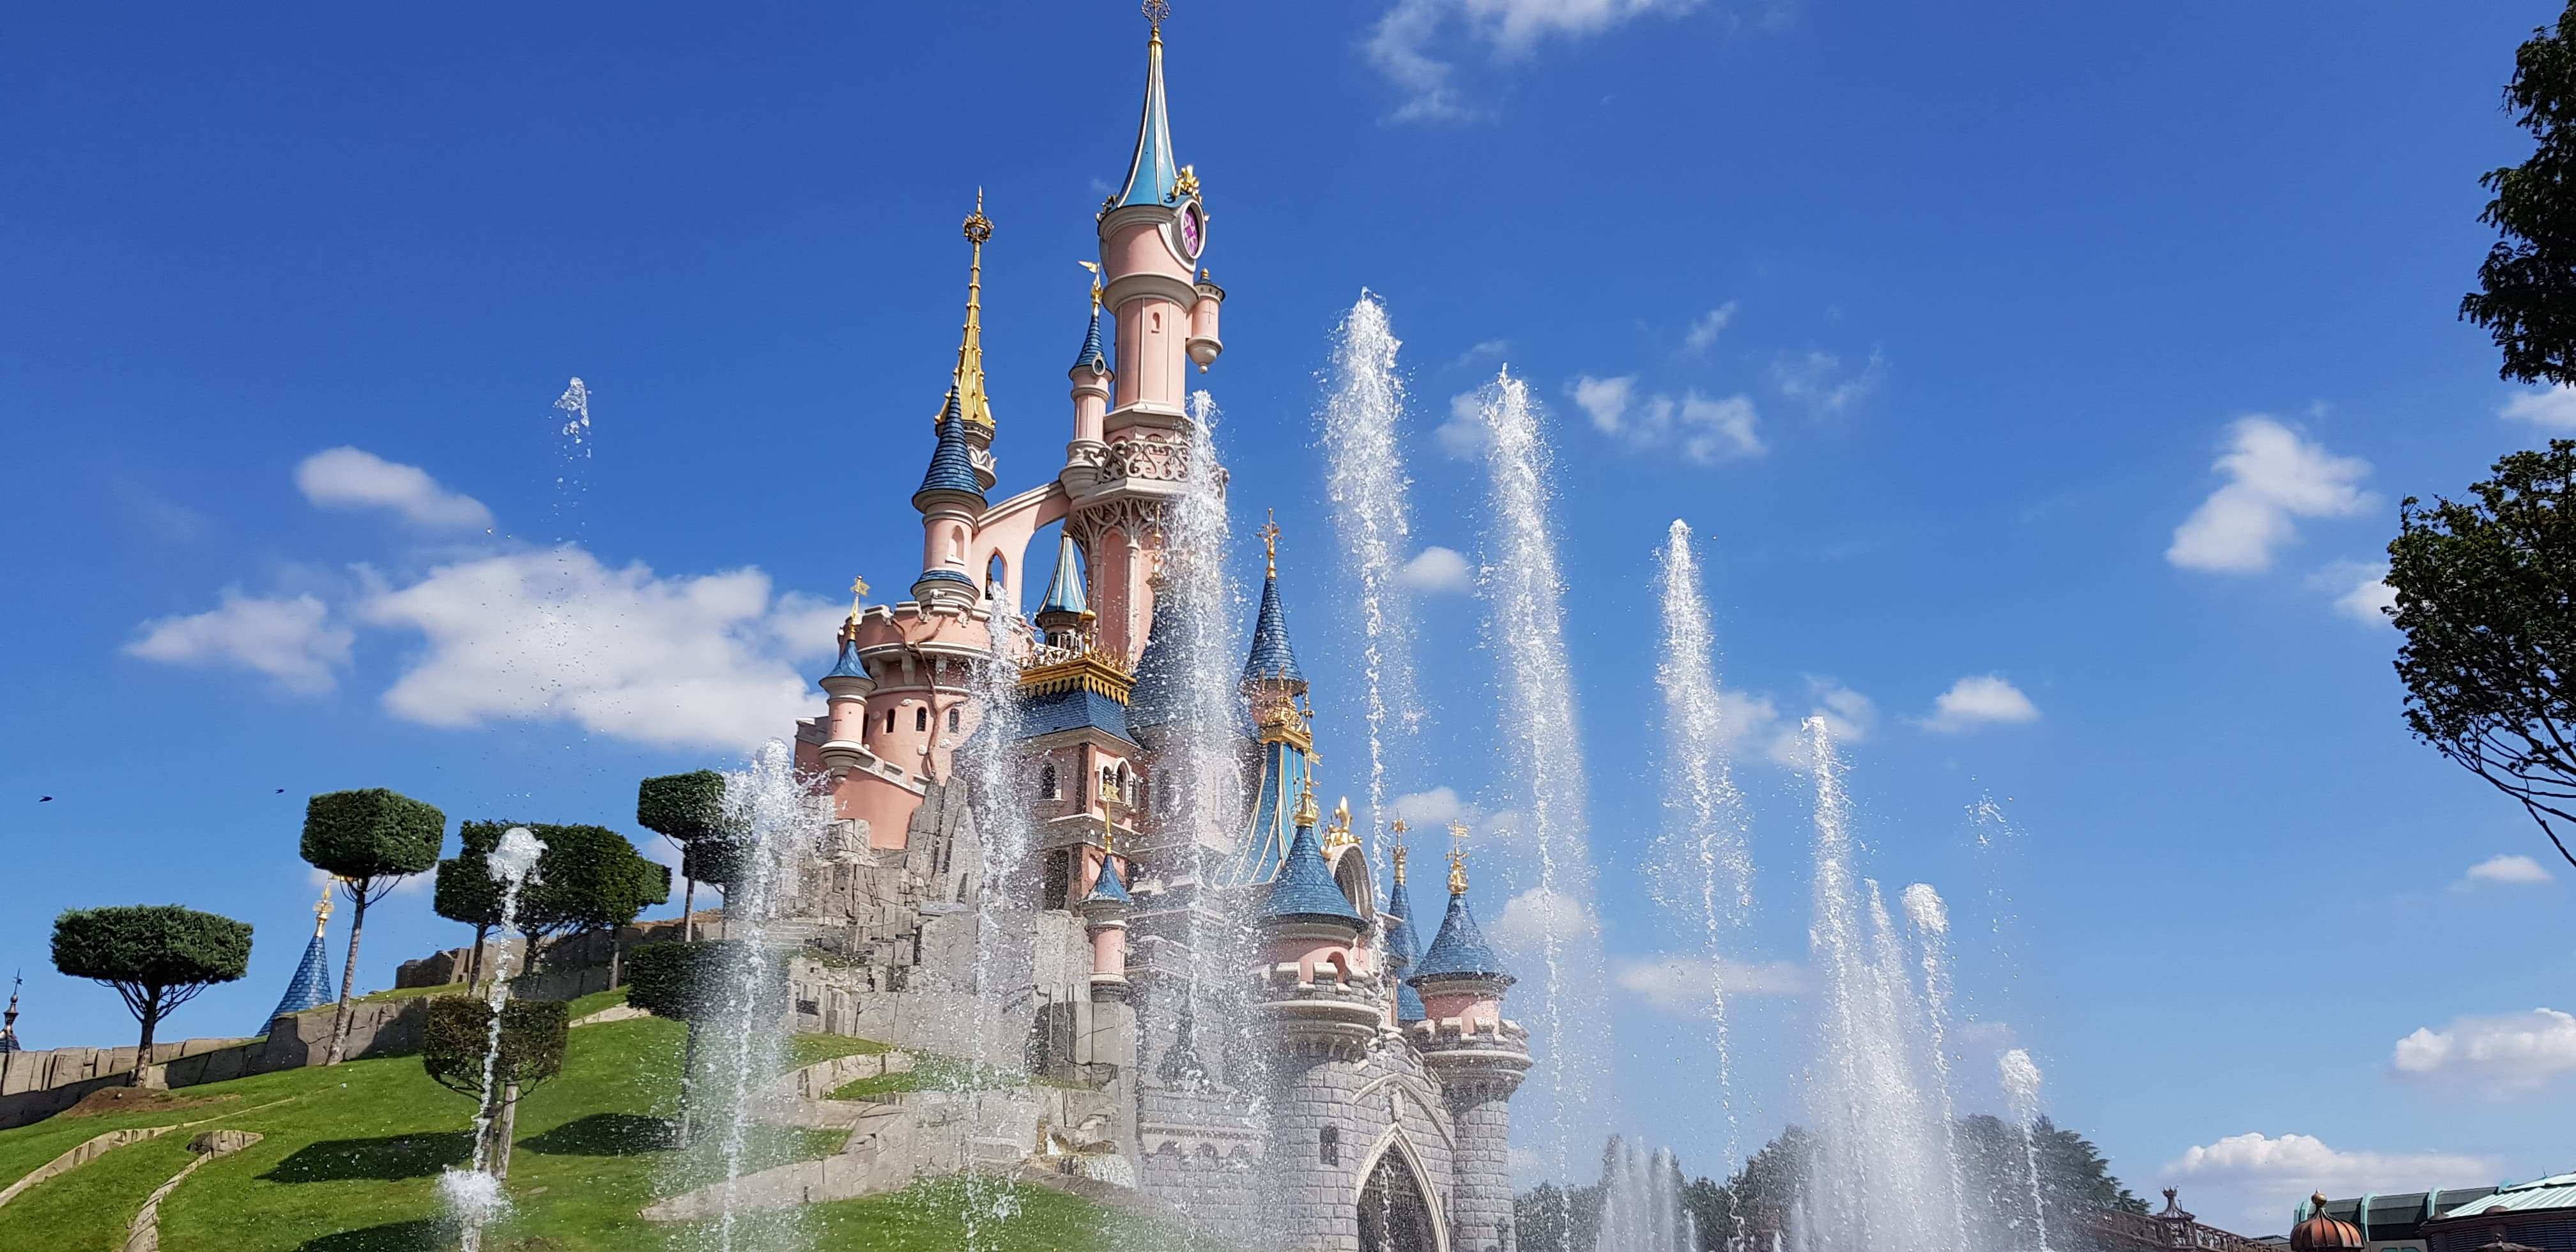 Is it worth to go to Disneyland Paris